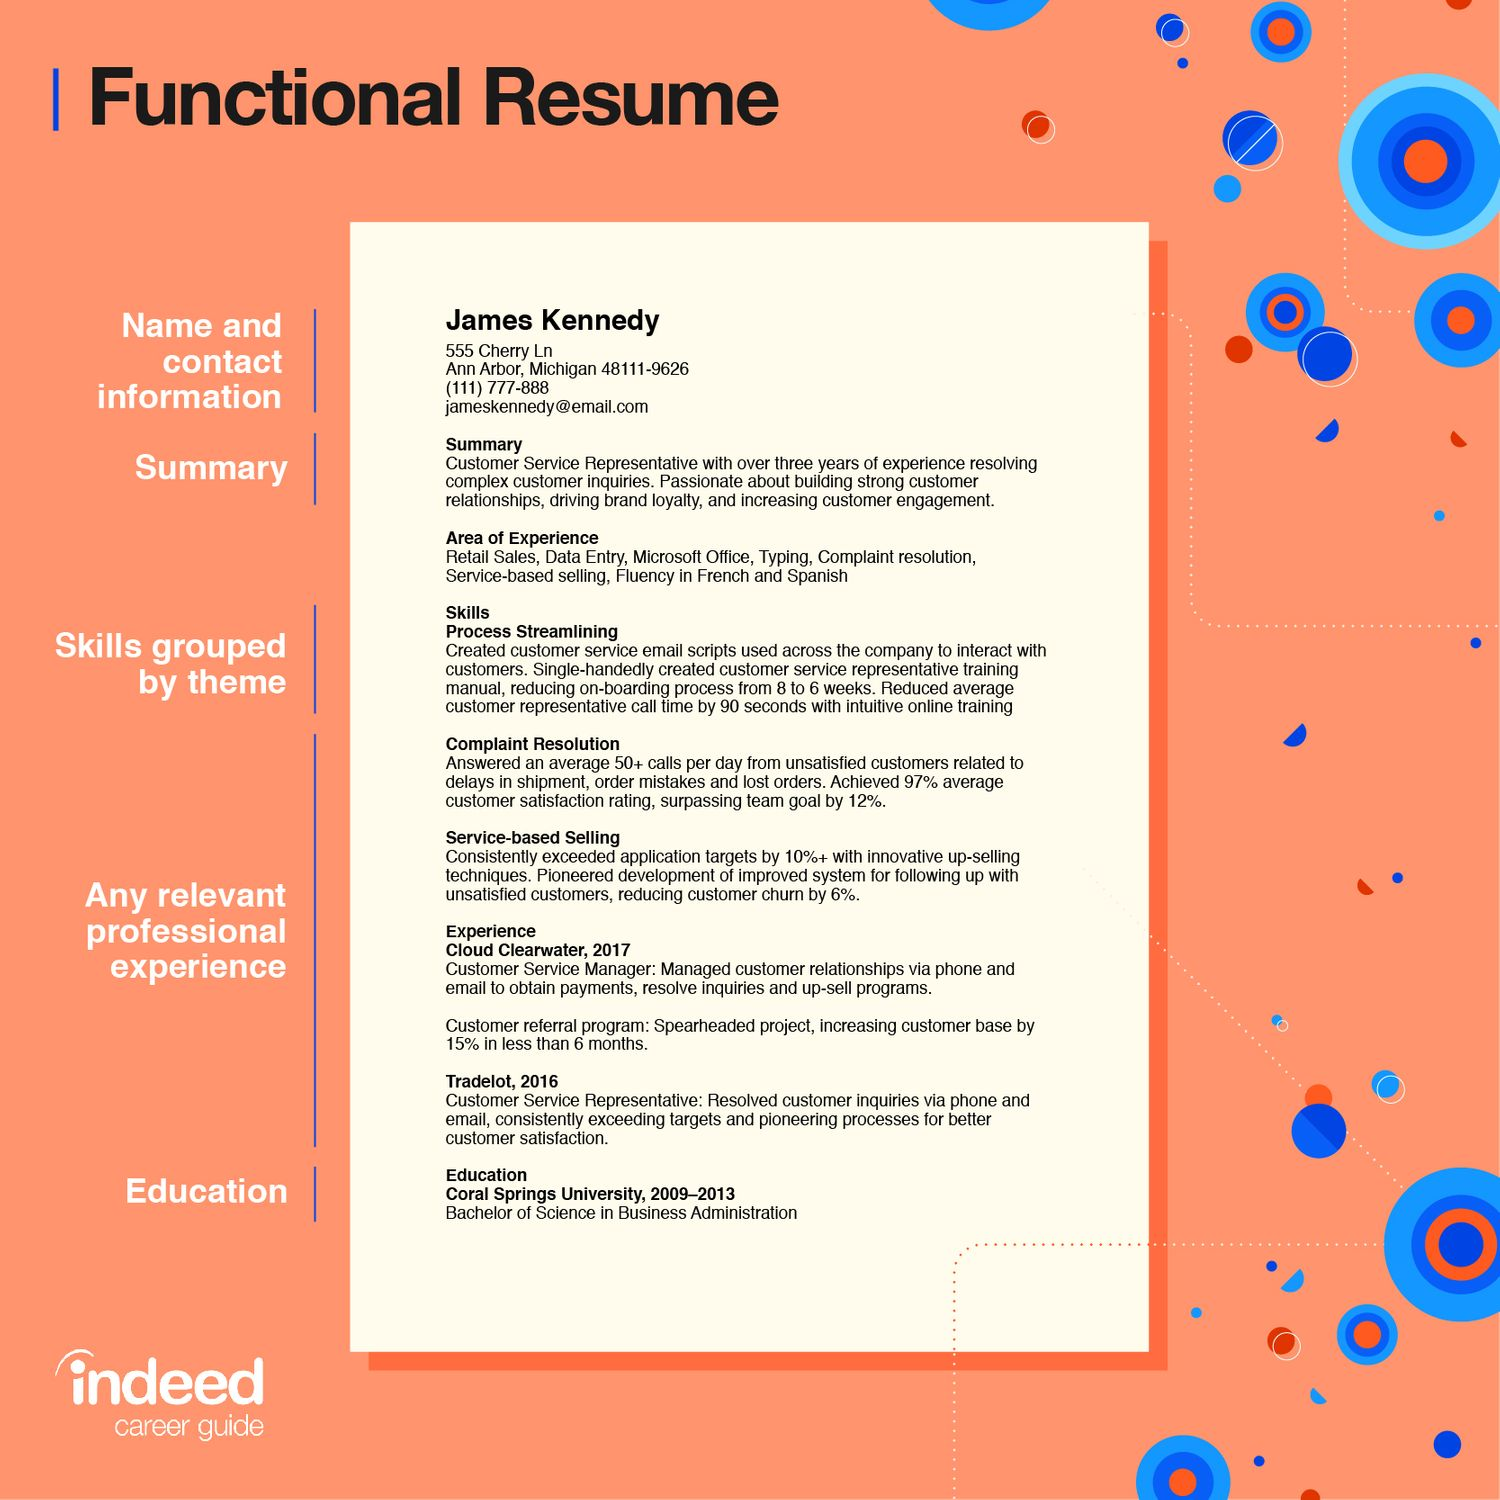 best skills to include on resume with examples indeed areas of strength resized help desk Resume Areas Of Strength Examples Resume